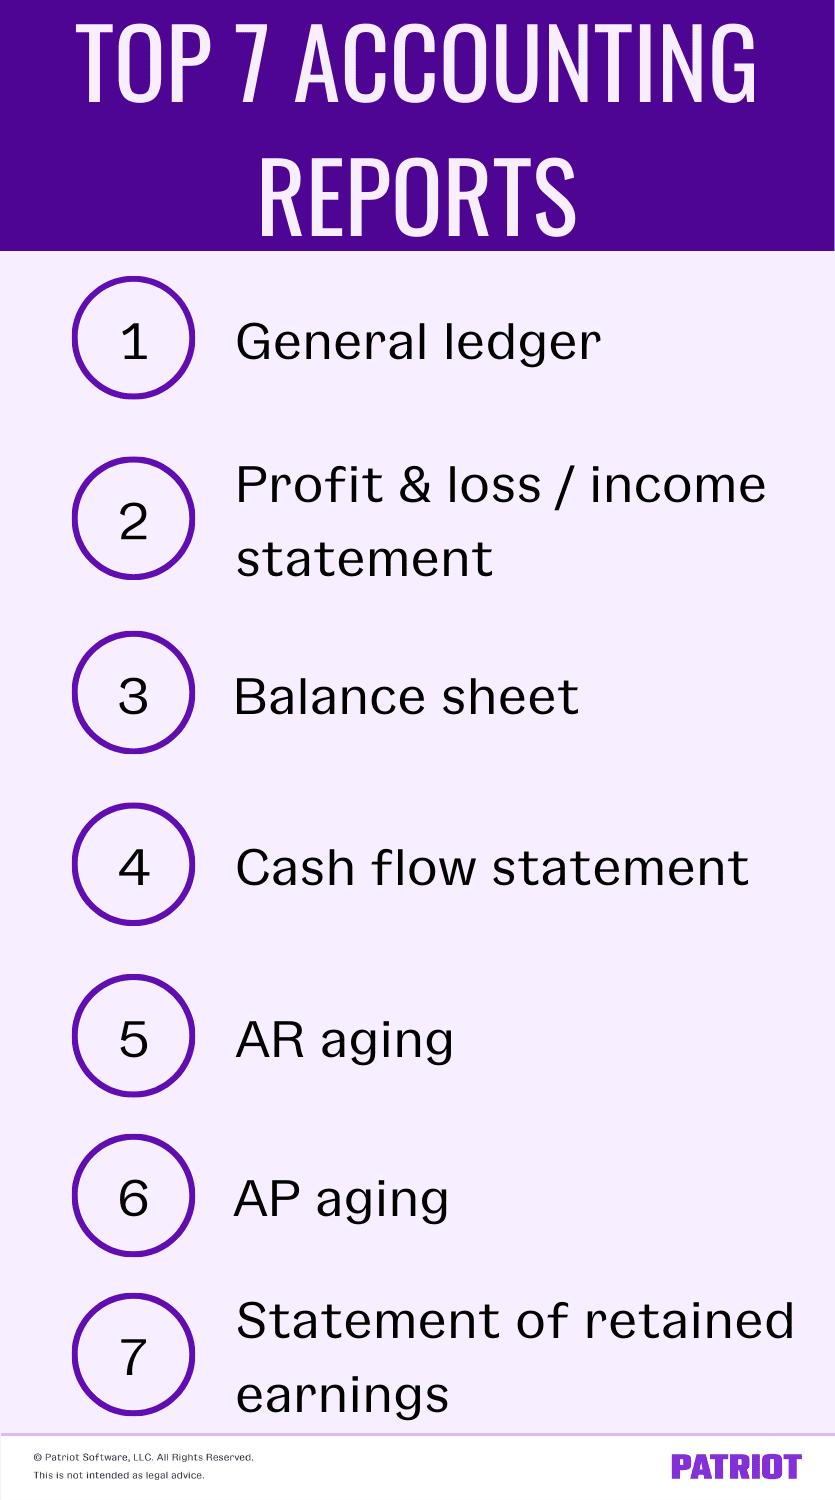 Top 7 accounting reports include the general ledger, profit and loss / income statement, balance sheet, cash flow statement, AR aging, AP aging, and the statement of retained earnings.